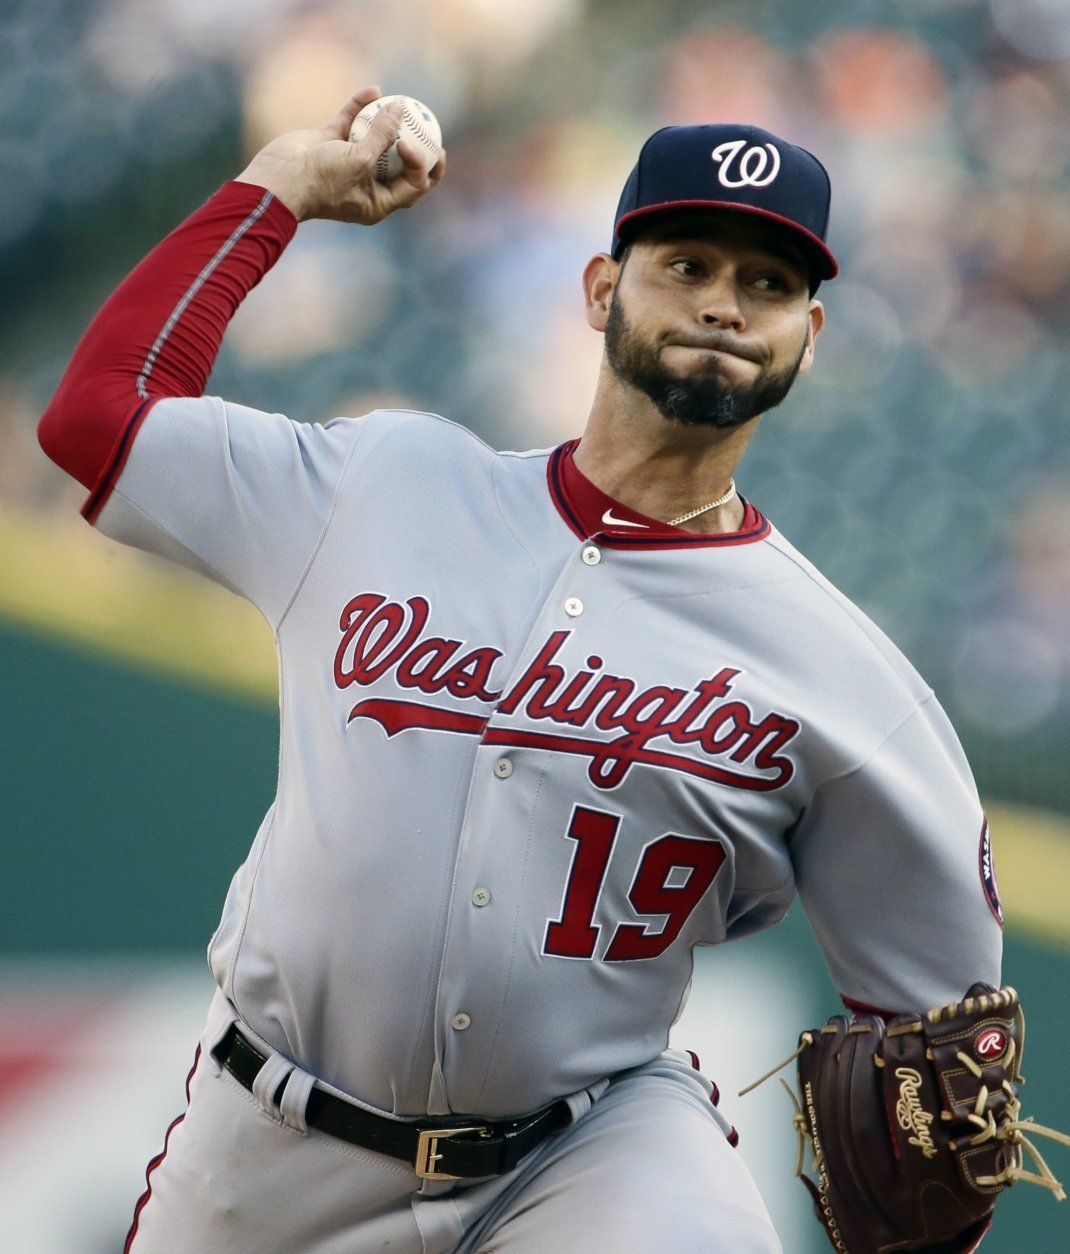 Washington Nationals' Anibal Sanchez (19) pitches against the Detroit Tigers during the second inning of a baseball game, Friday, June 28, 2019, in Detroit. (AP Photo/Duane Burleson)